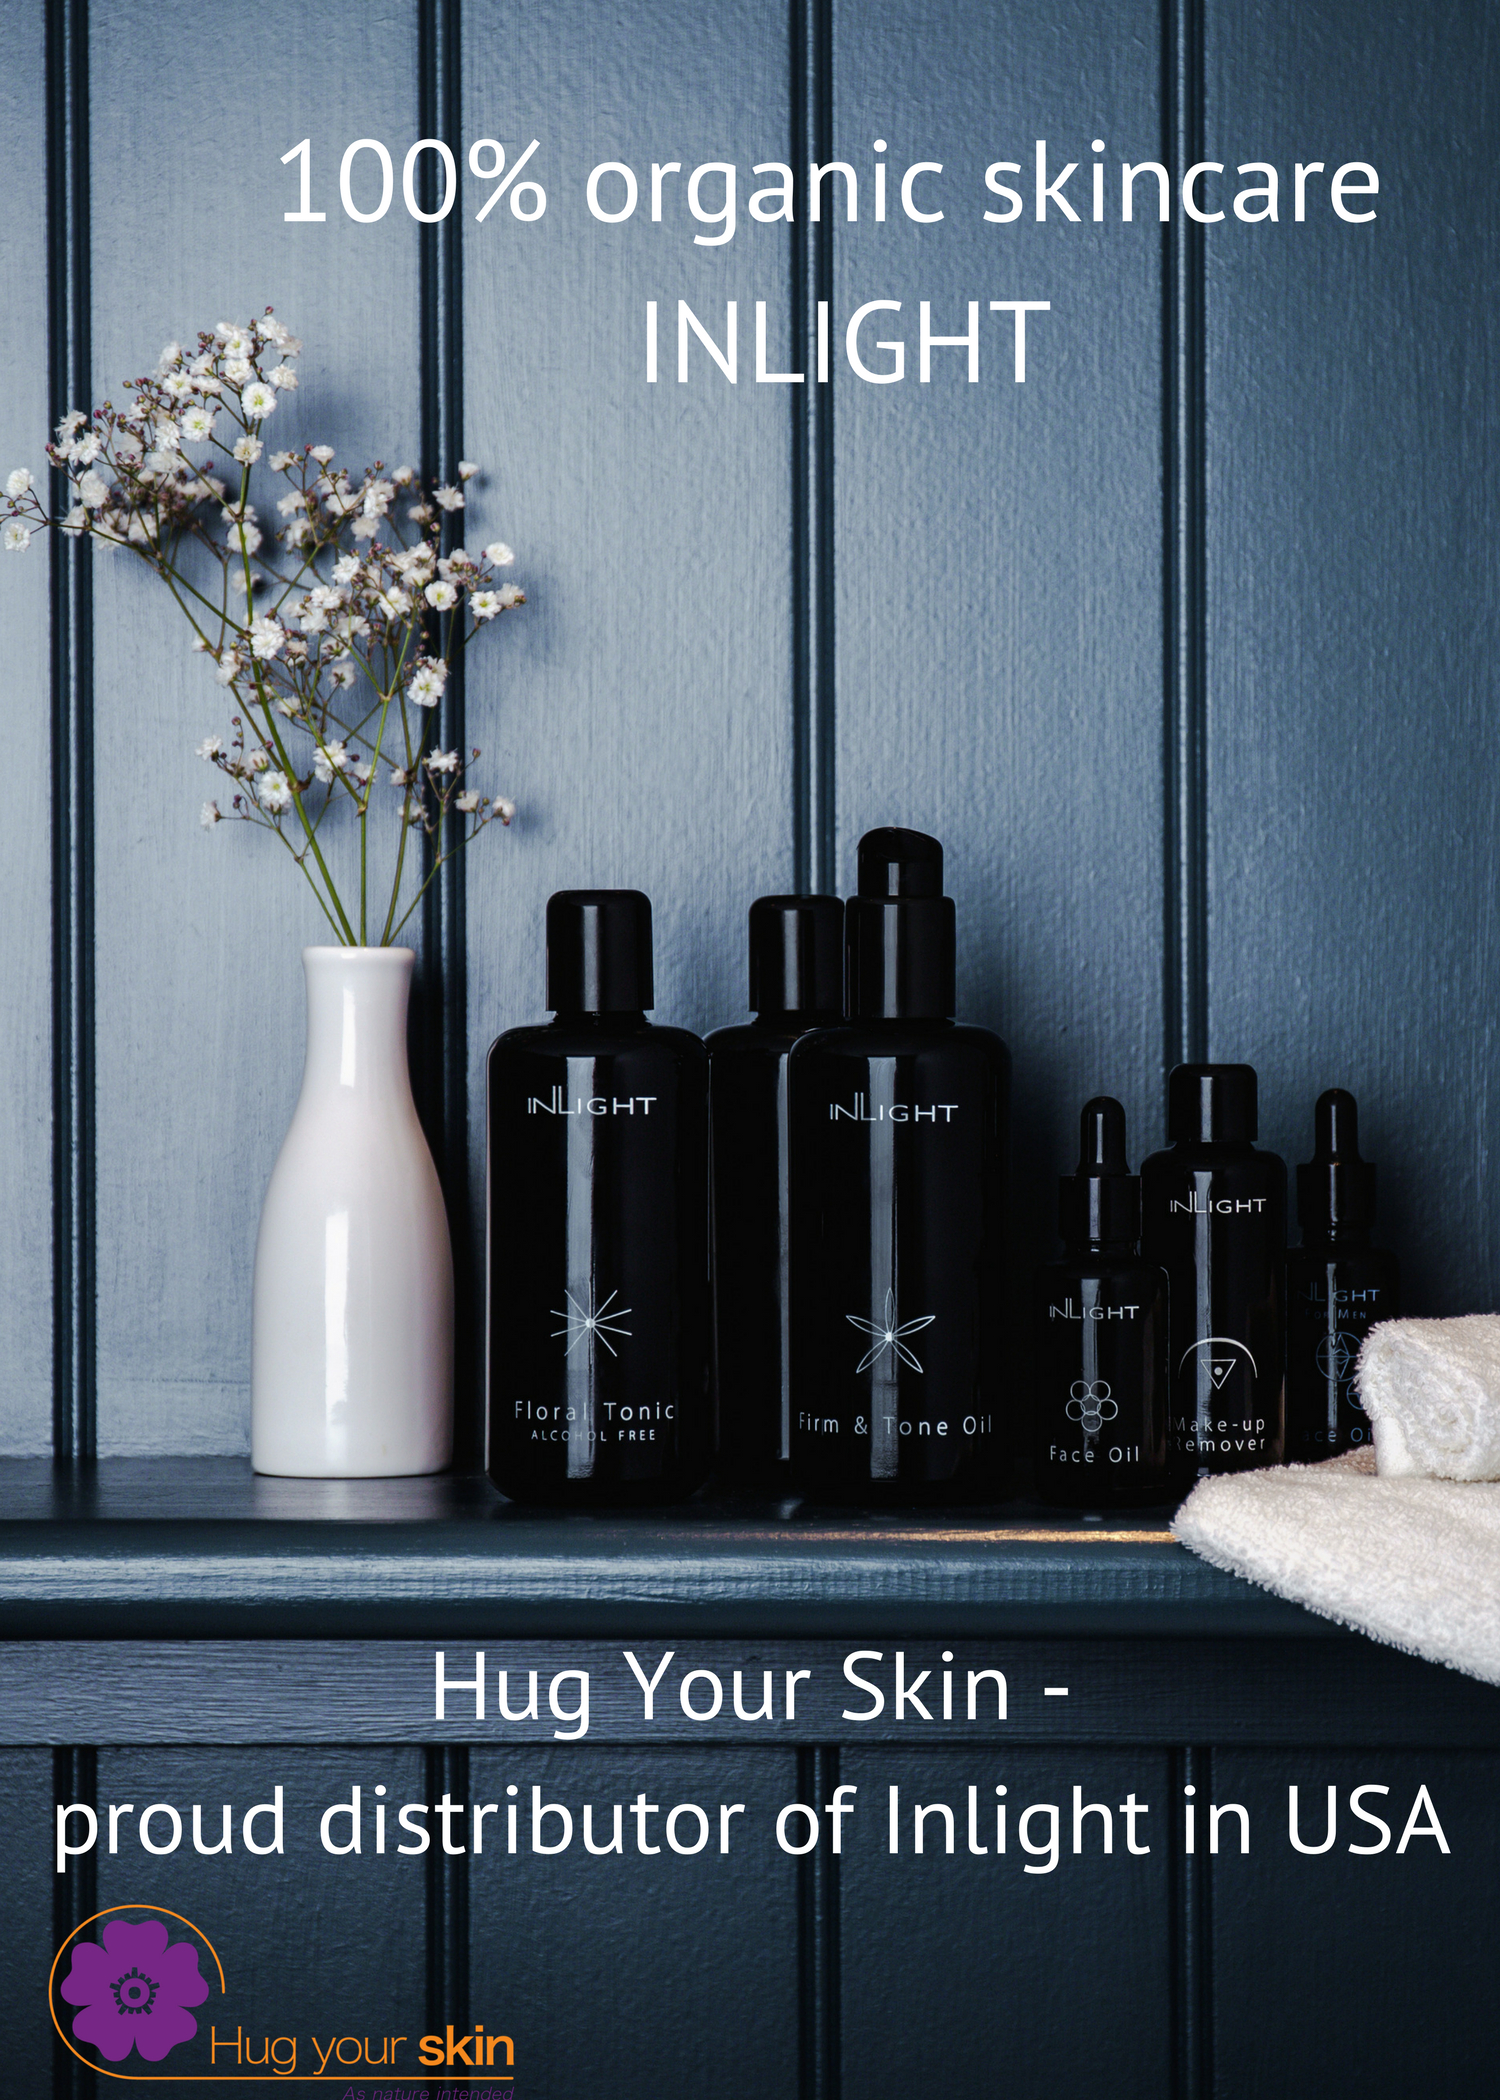 Proudly Distributing Inlight Organic Skincare In Usa And Canada 100 Organic Skincare Line From Uk In Both Organic Skin Care Skin Care Organic Skin Care Lines